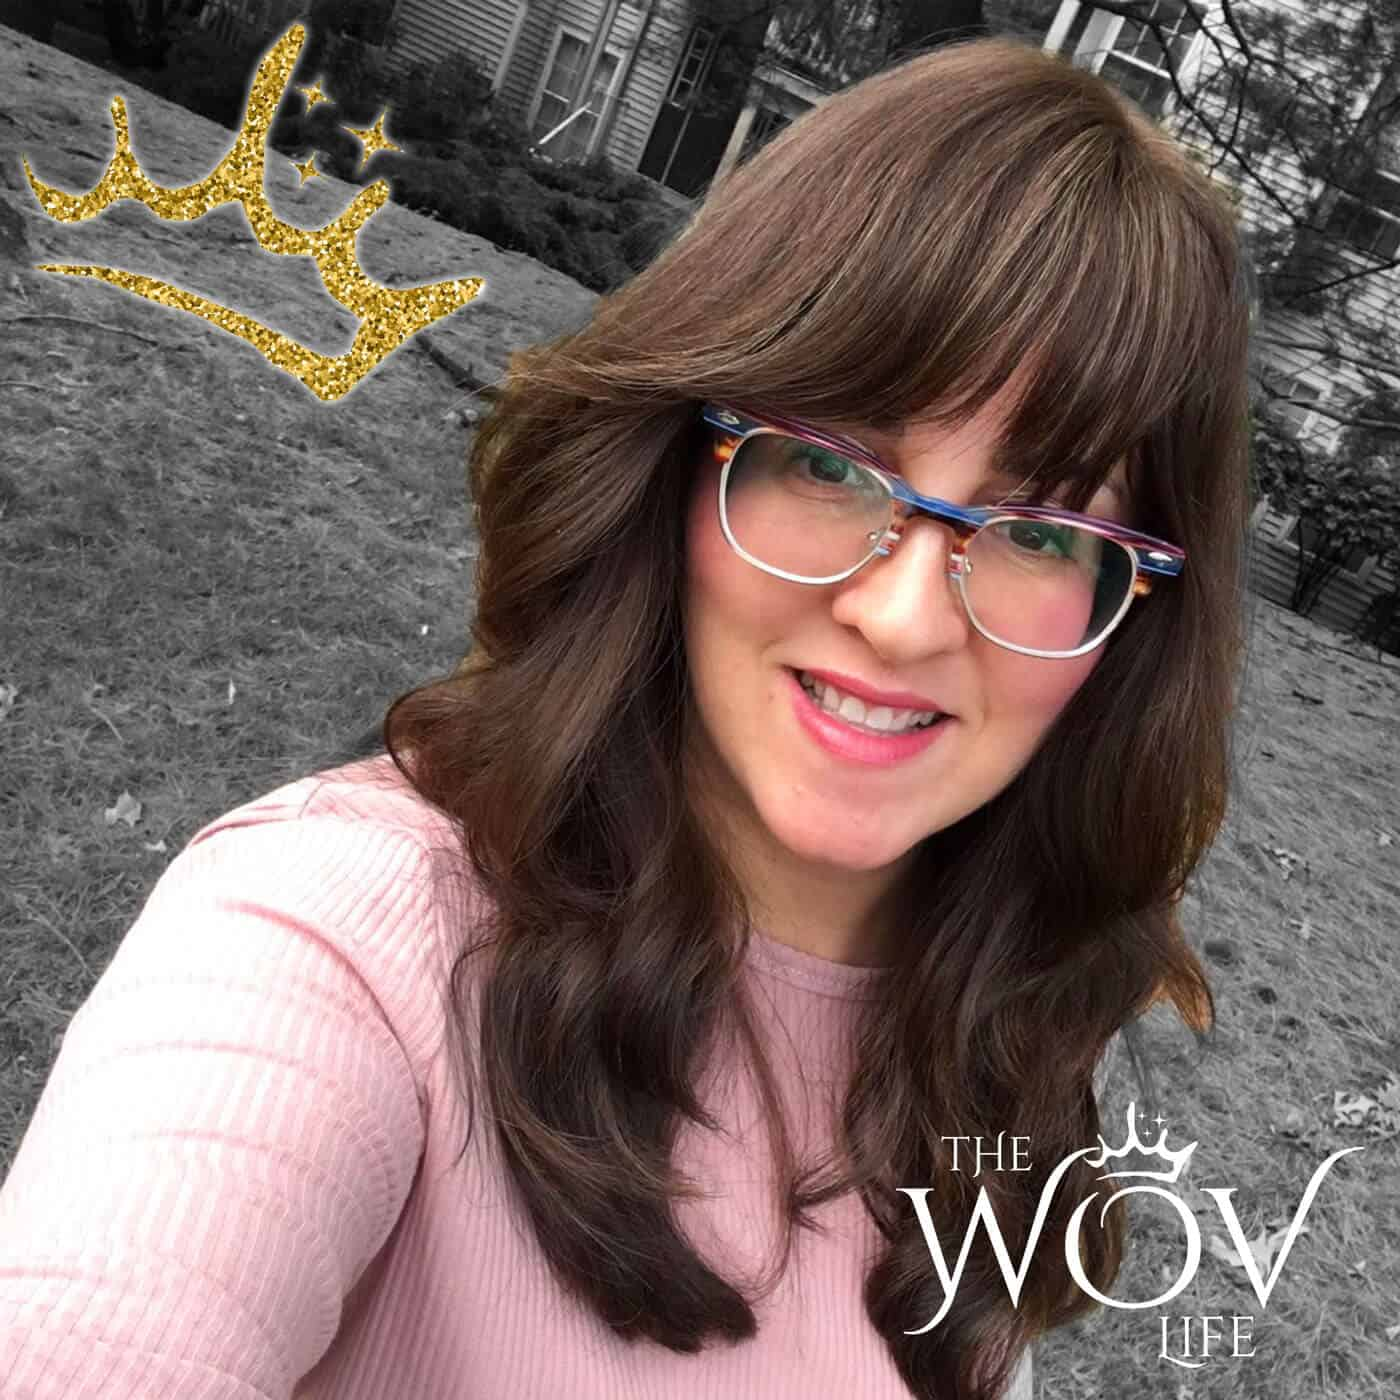 Ep. 002: Find Your Pasta Broccoli with Abbey Wolin